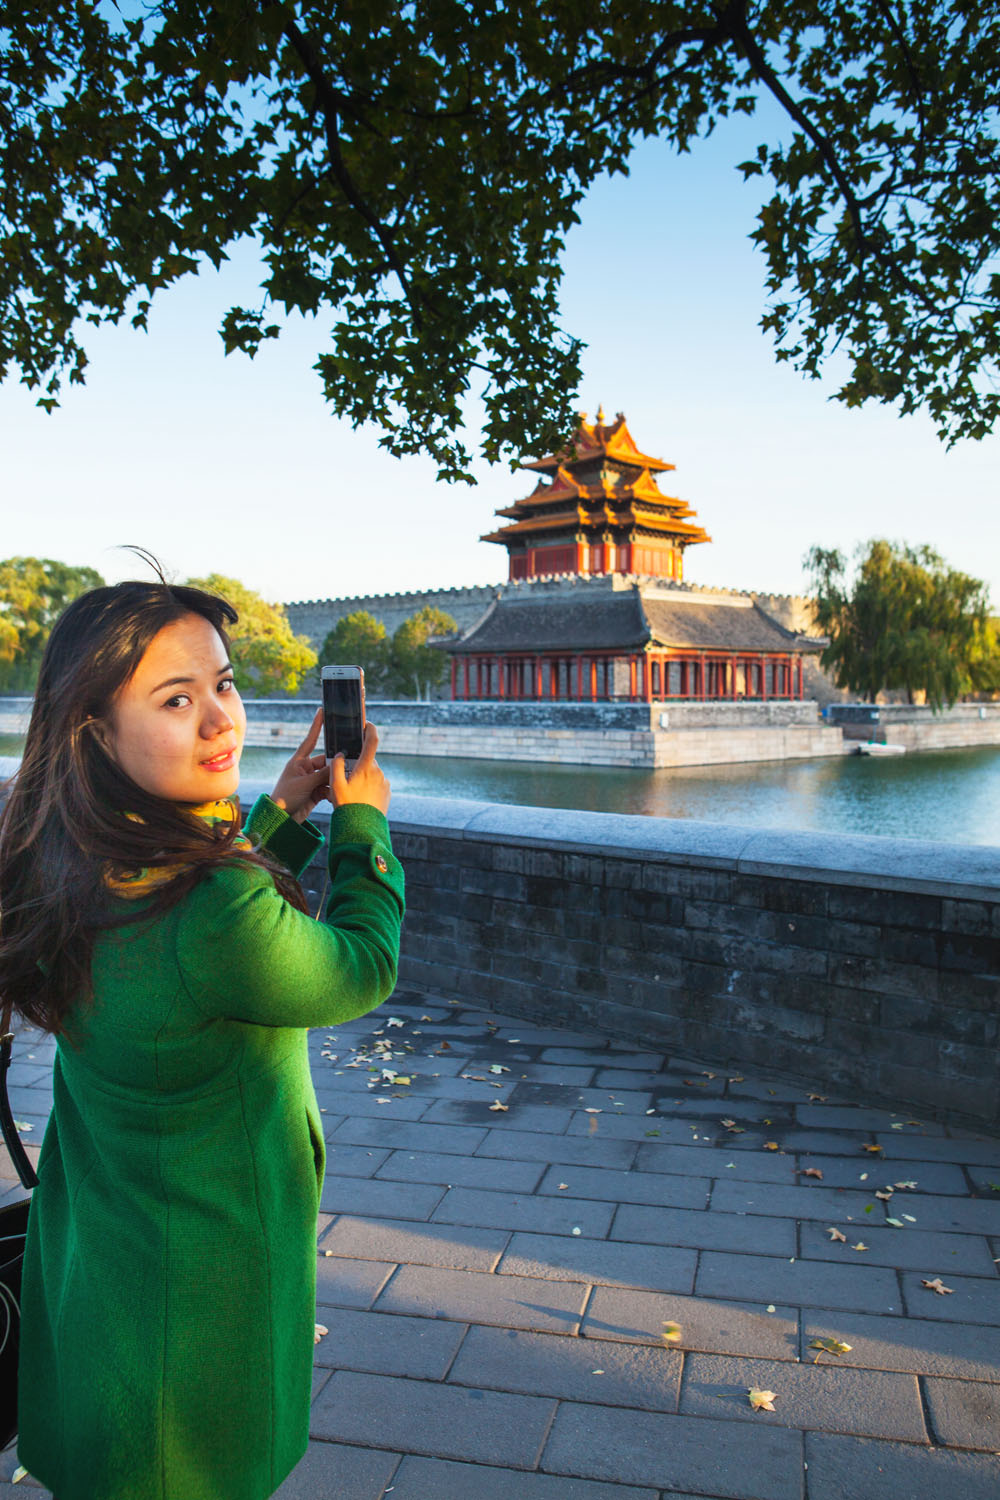 Chinese tourist films Forbidden City in Beijing, China